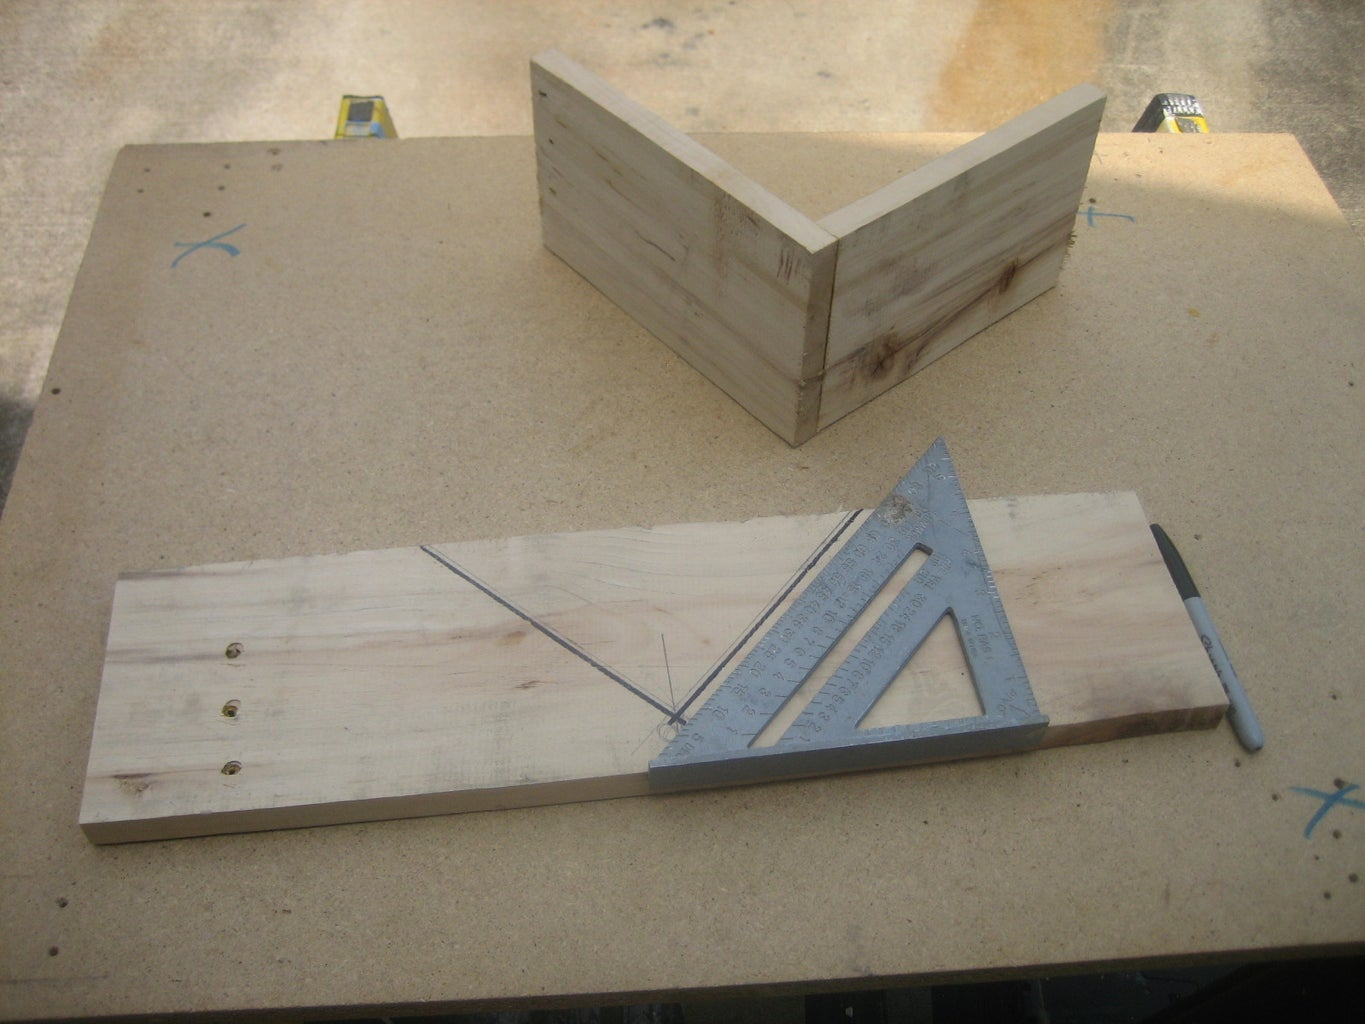 CUTTING AND ASSEMBLING PARTS